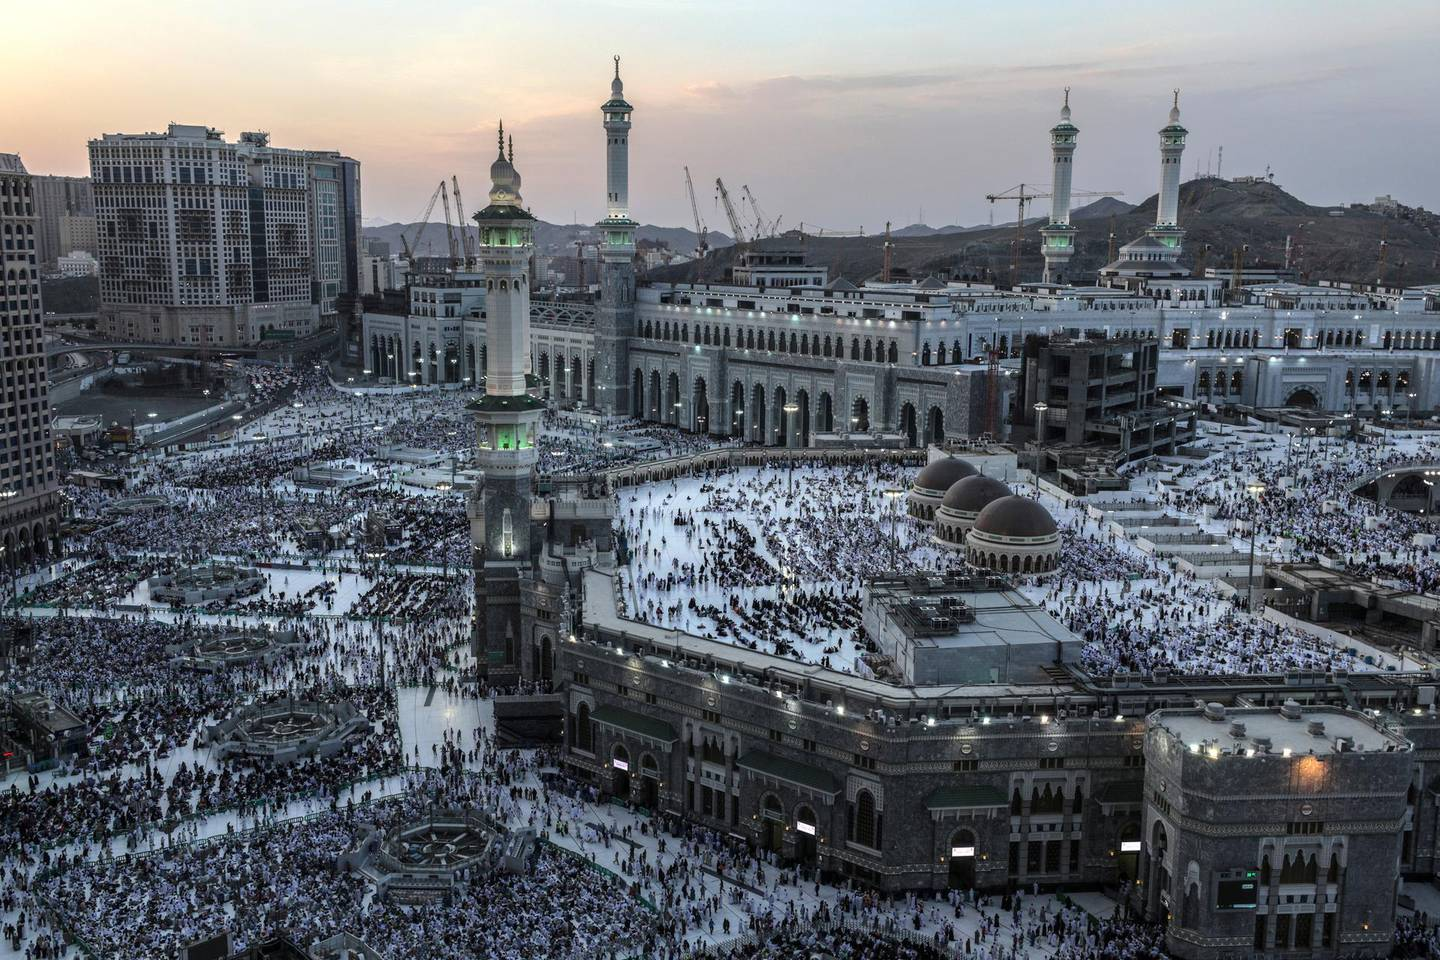 epa06958157 Muslim pilgrims pray around the holy Kaaba at the Grand Mosque in Mecca, Saudi Arabia, 18 August 2018 (issued 19 August 2018). Around 2.5 million Muslims are expected to attend this year's Hajj pilgrimage, which is highlighted by the Day of Arafah, one day prior to Eid al-Adha. Eid al-Adha is the holiest of the two Muslims holidays celebrated each year, it marks the yearly Muslim pilgrimage (Hajj) to visit Mecca, the holiest place in Islam.  EPA/MOHAMMED SABER